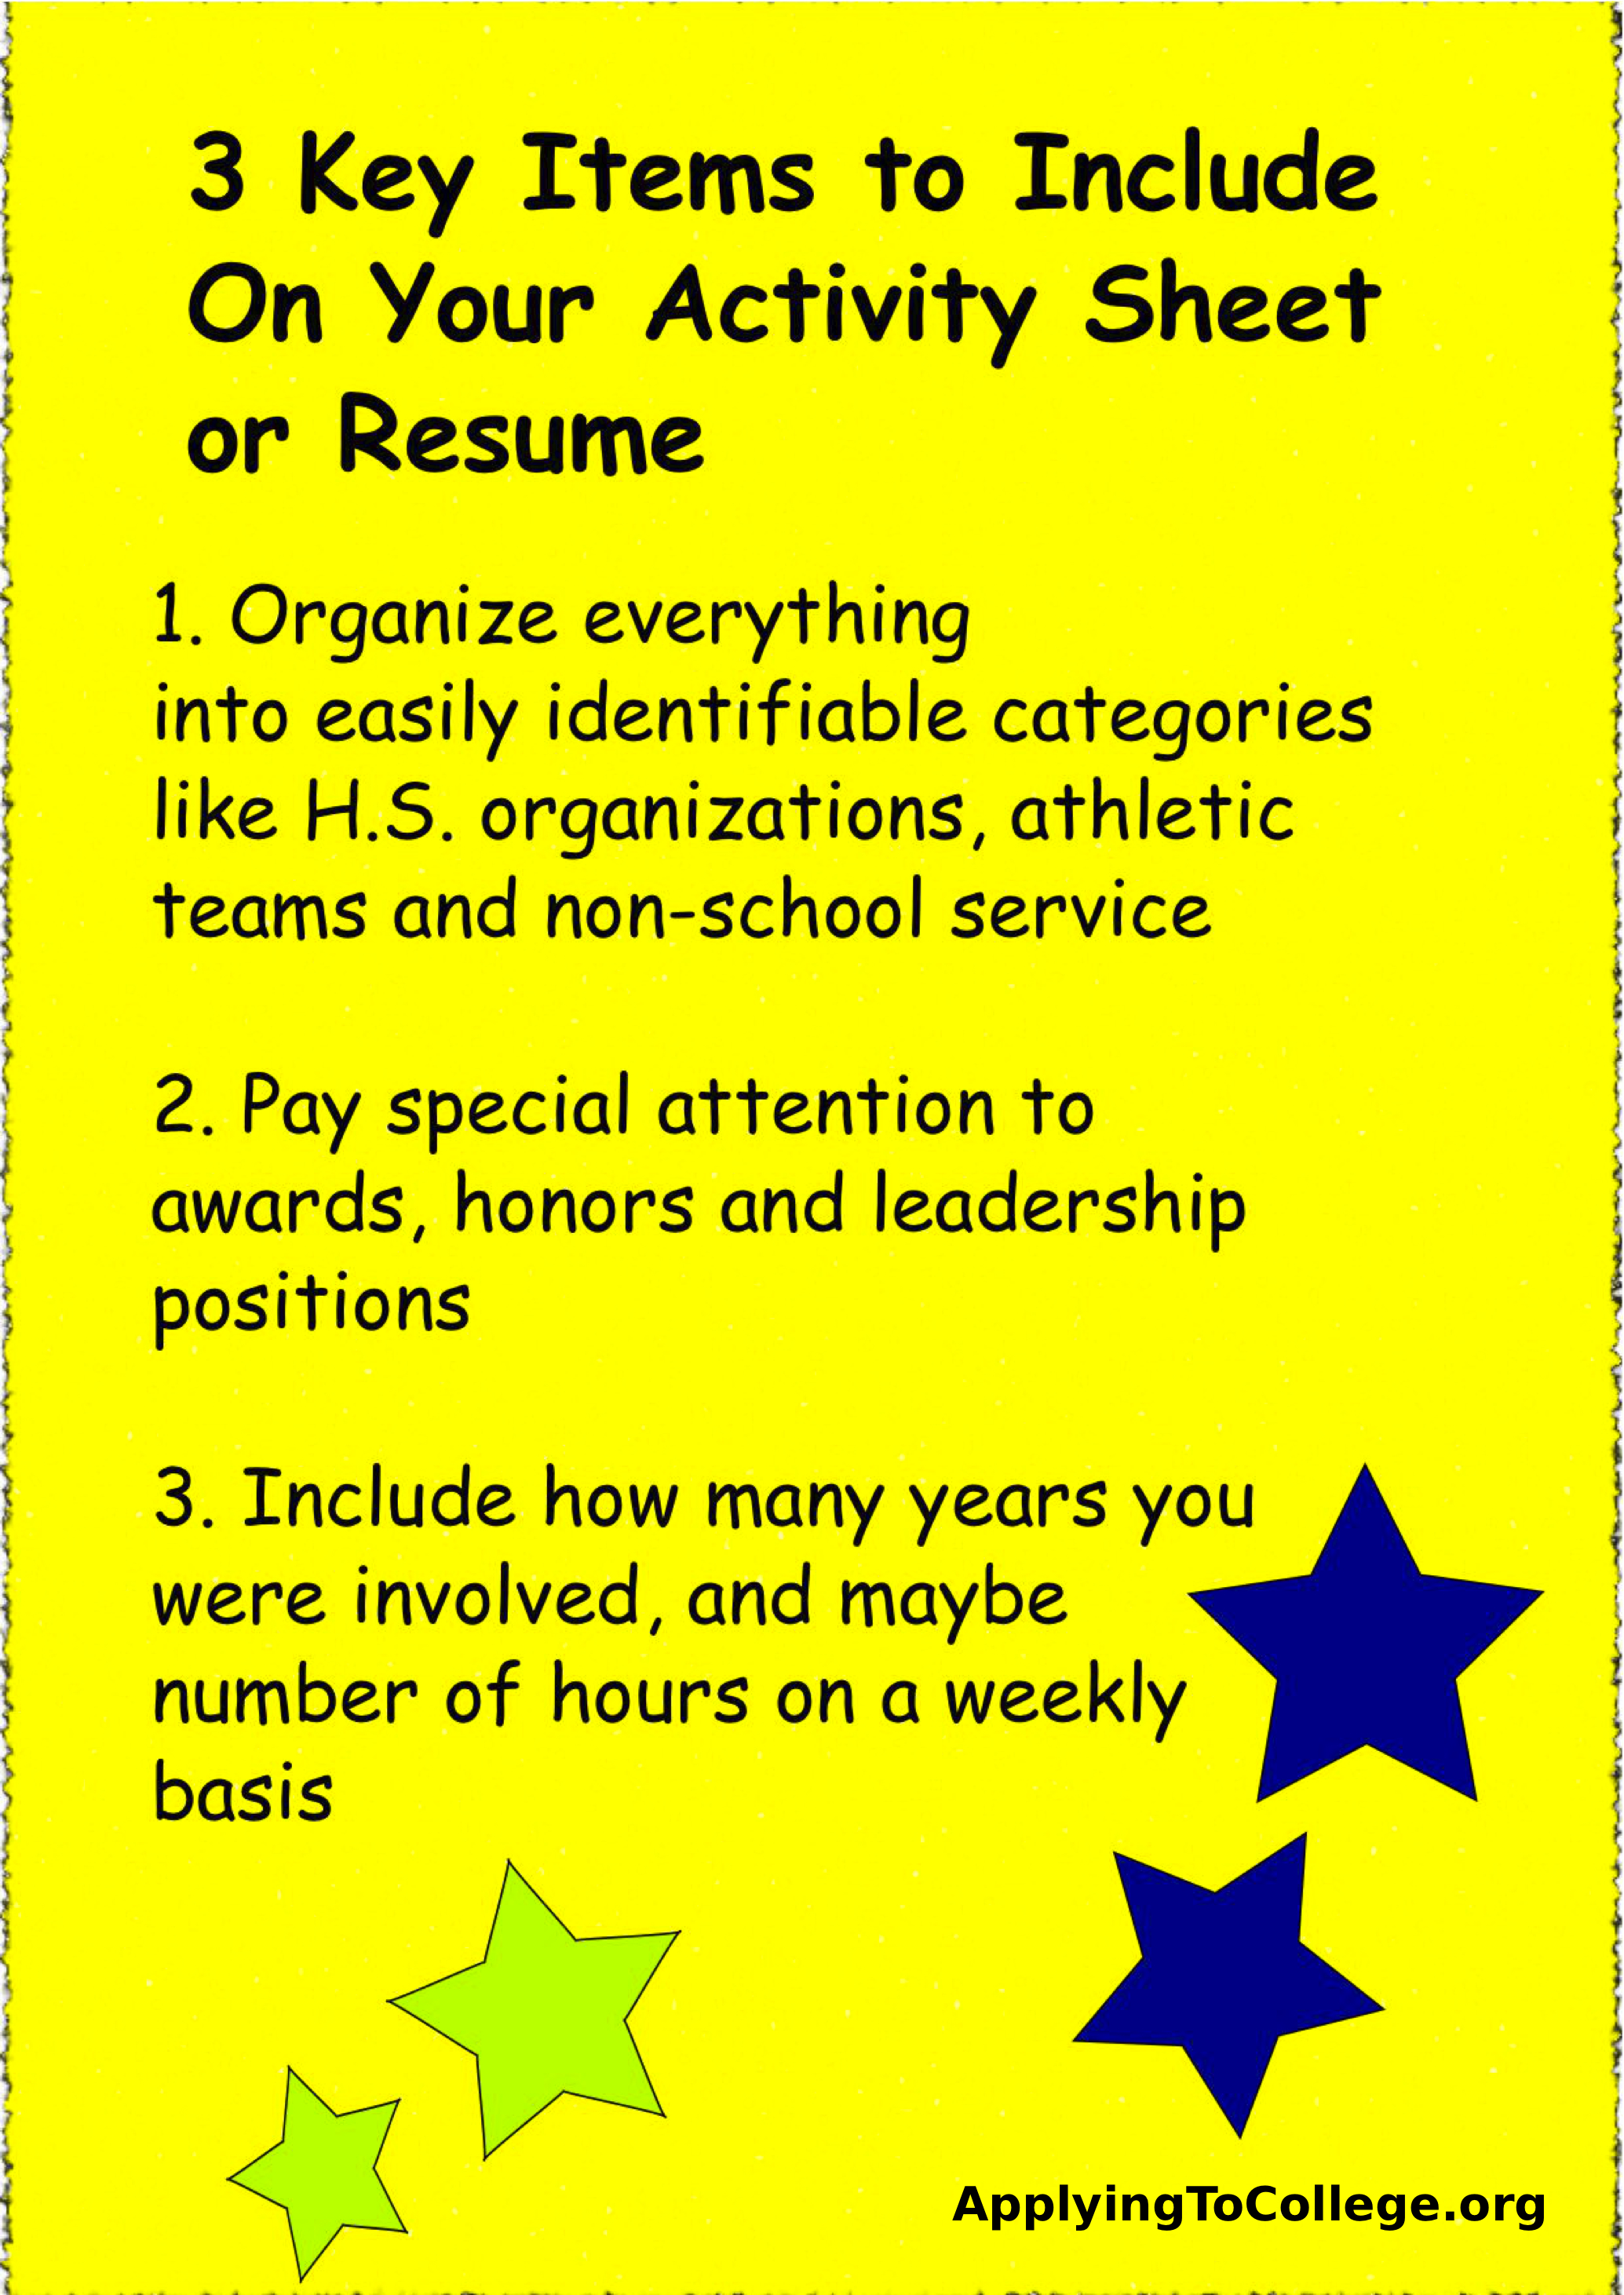 how to include subjects learned in college on a resume free writing paper